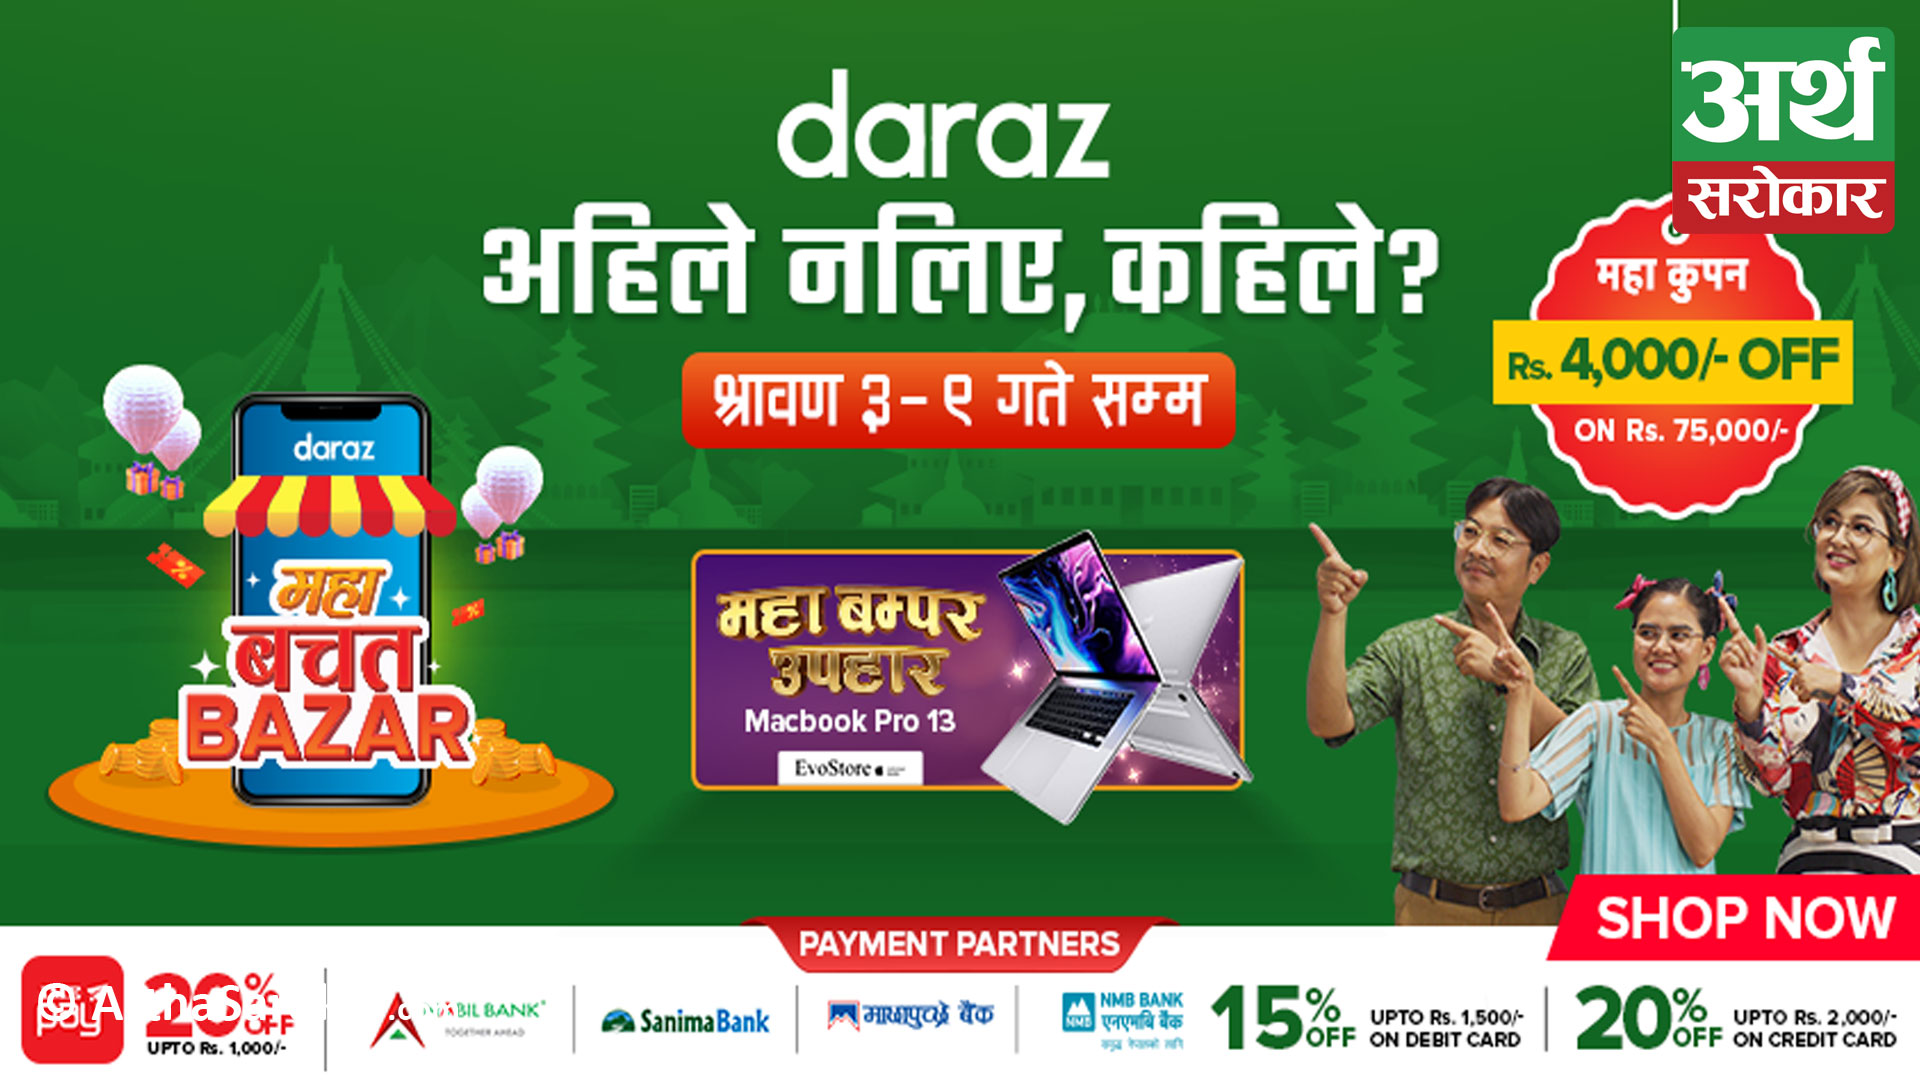 Discounts upto Rs. 6k and Chances to win iPhone and Macbook on Daraz Mahabachat Bazar